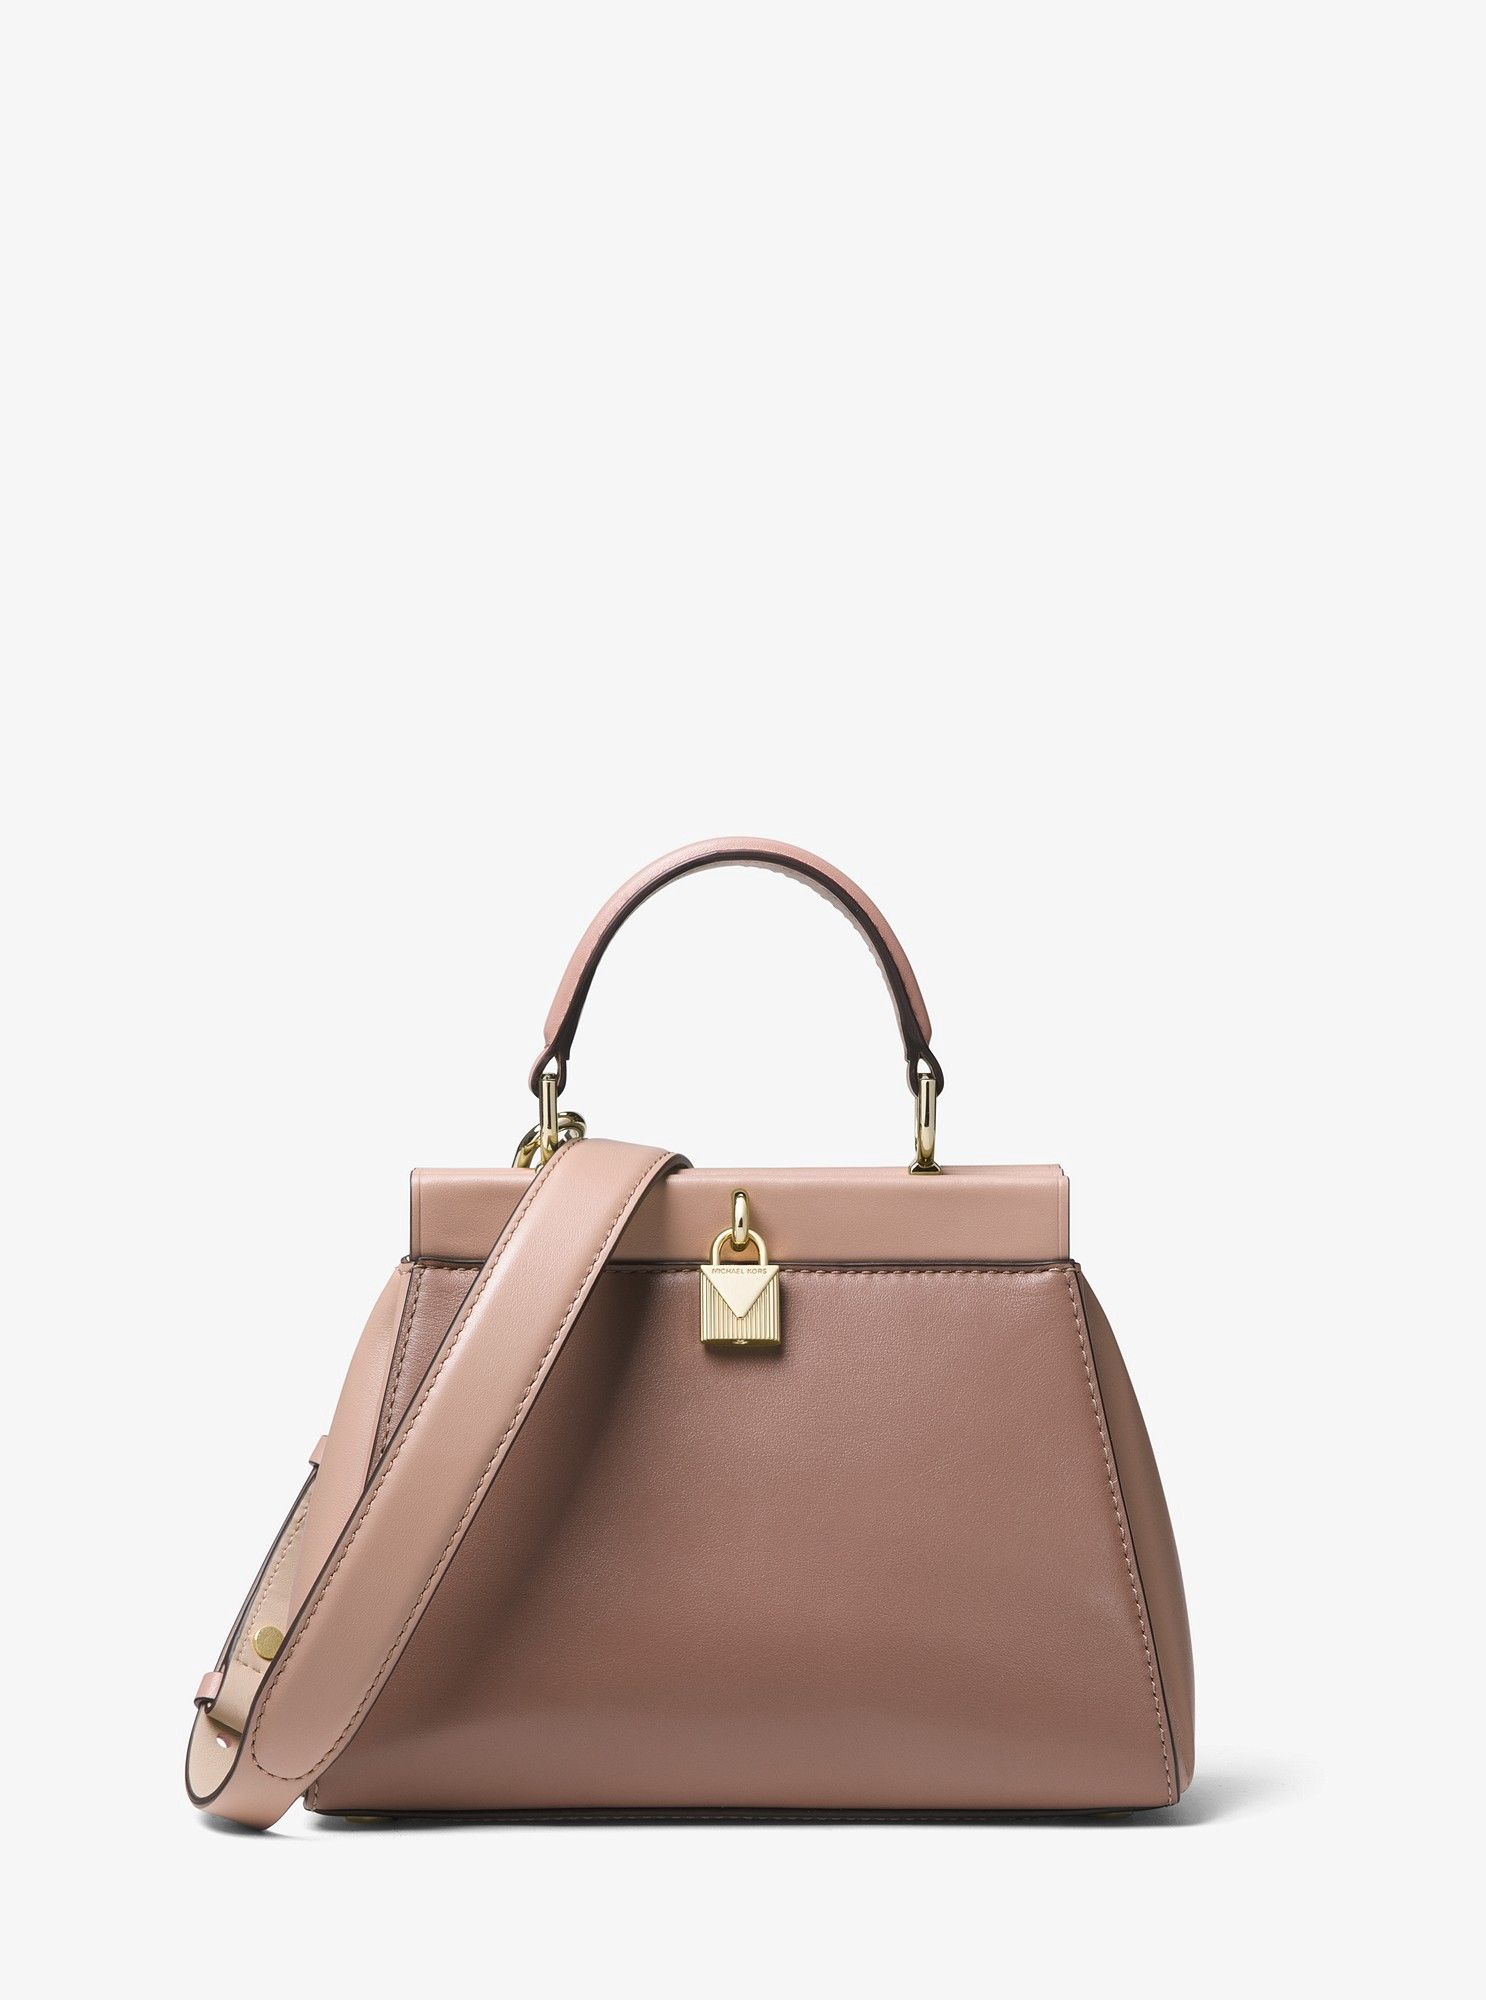 Michael Kors Gramercy Small Color-Block Leather Frame Satchel - Dstyrs Multi 684f1ce699